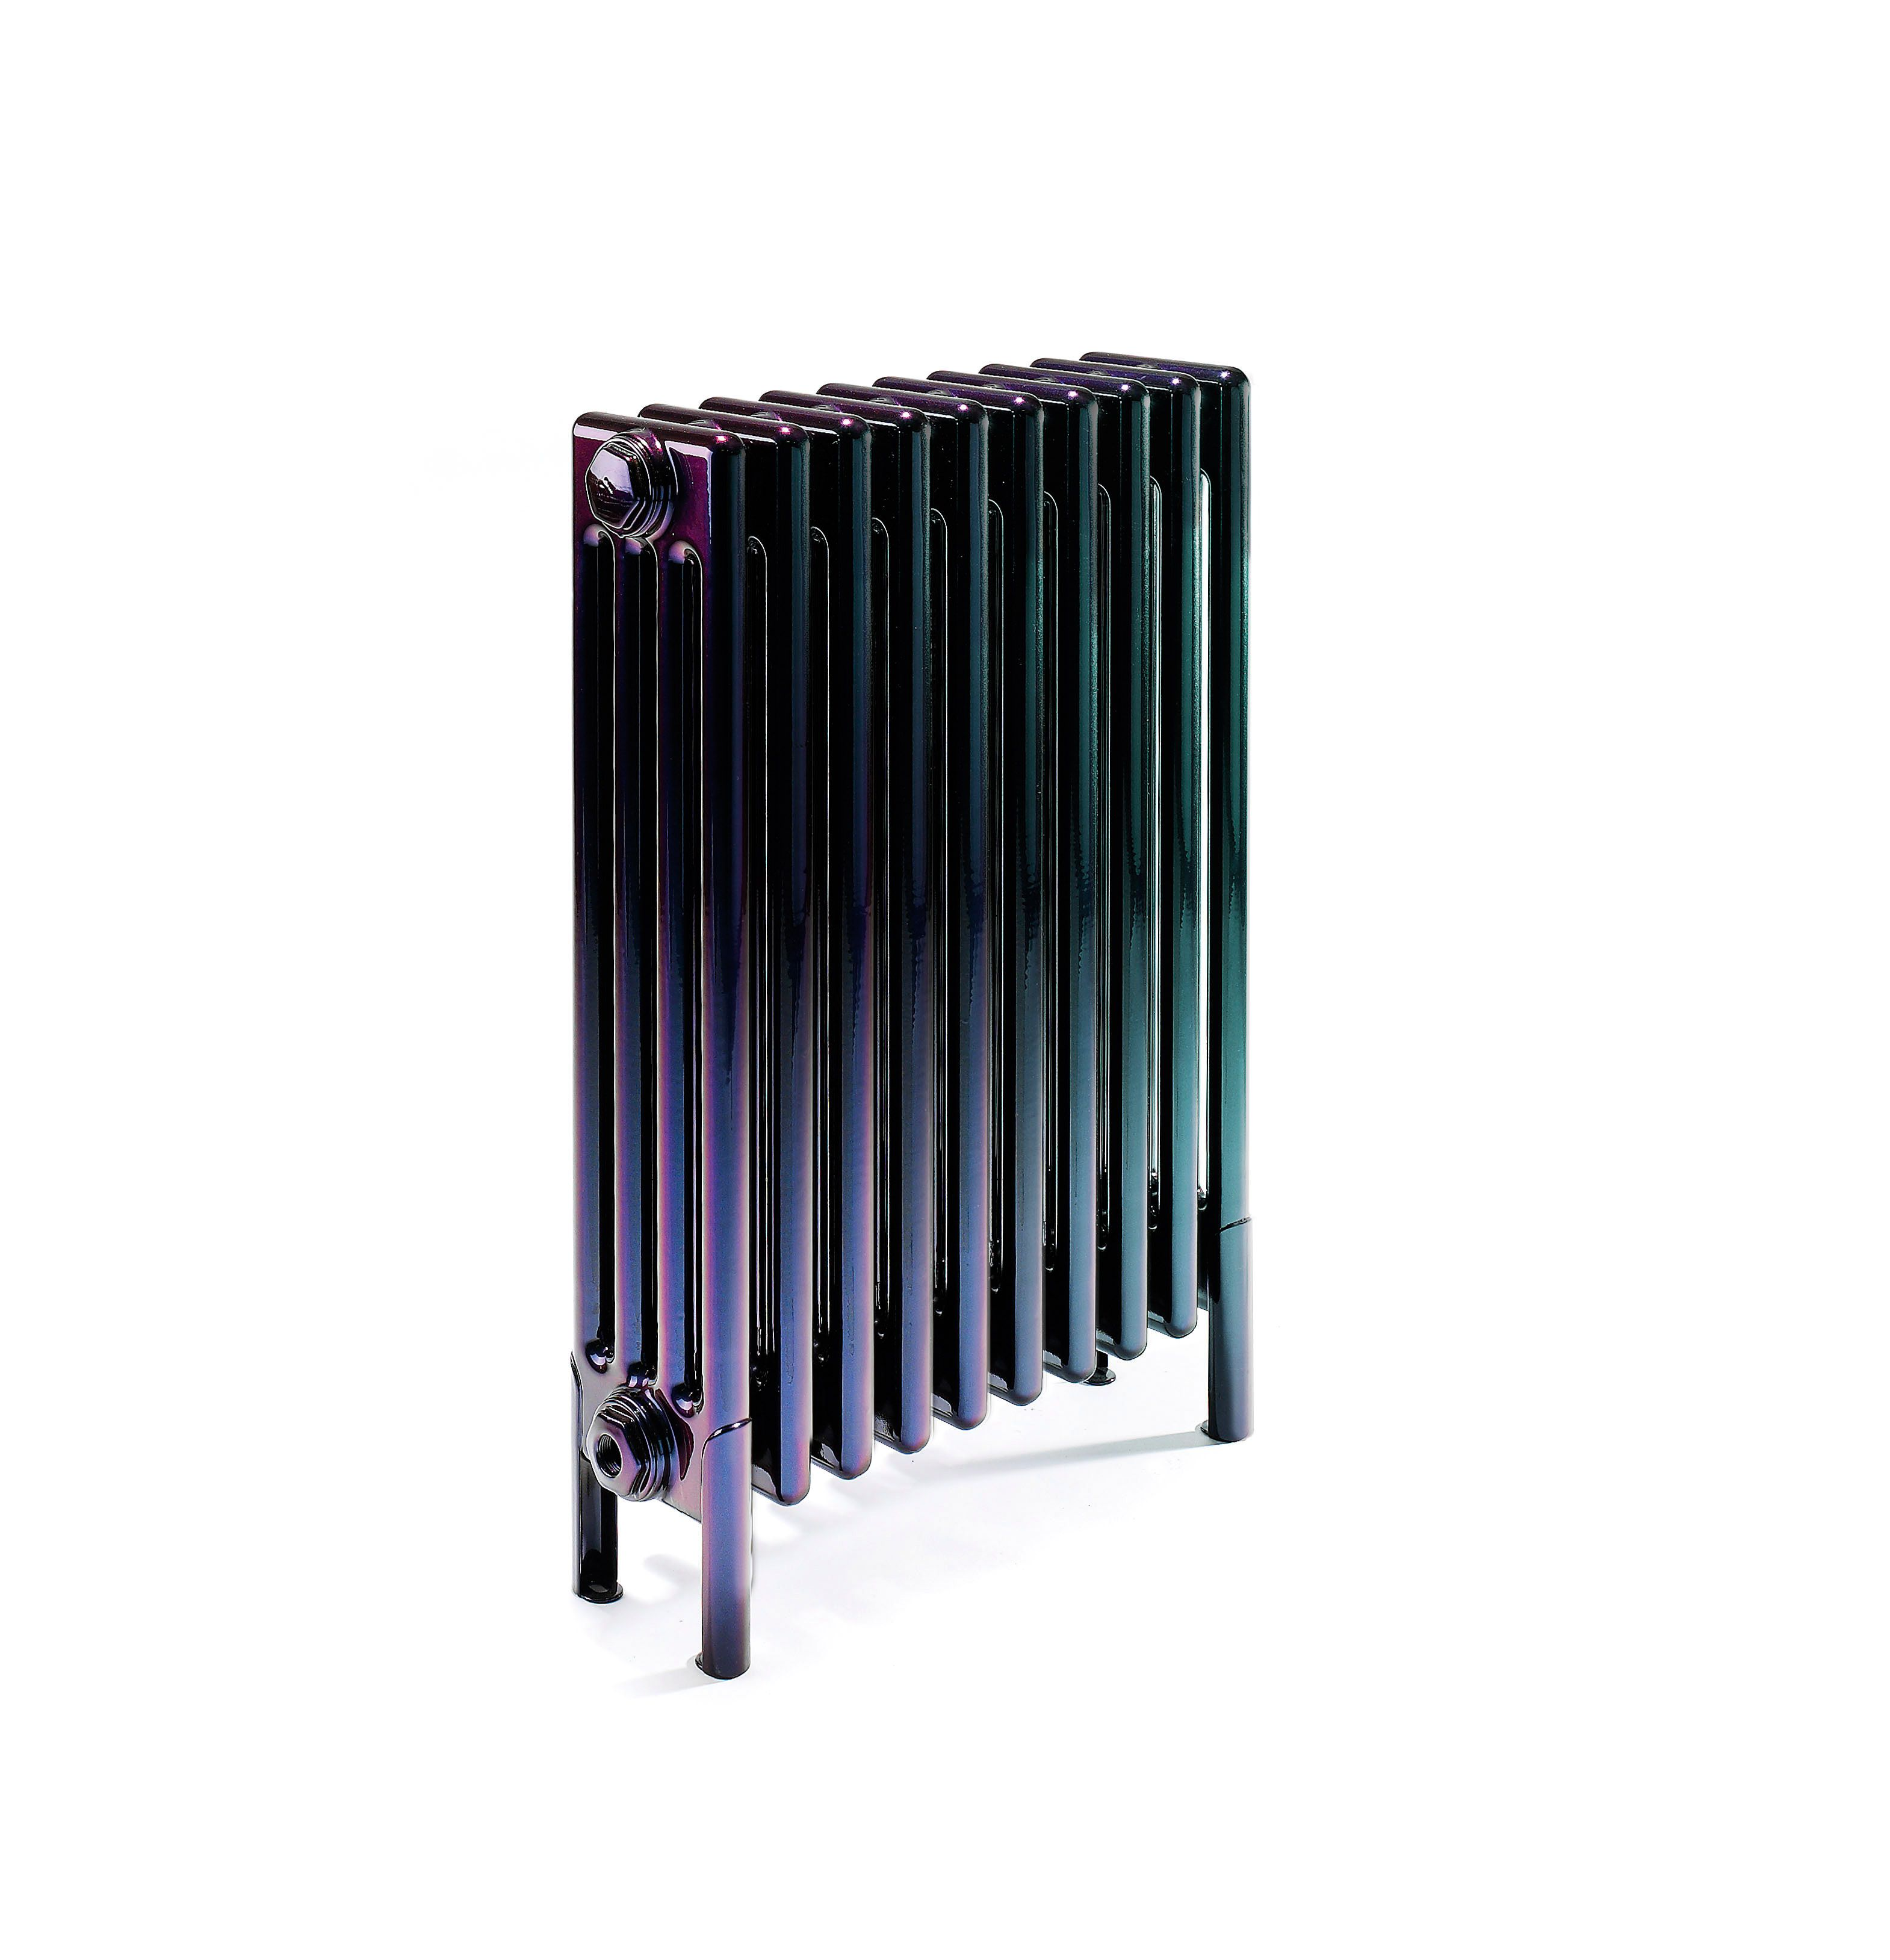 Bisque's disco inspired radiator finish - ideal for creating that boogie wonderland!